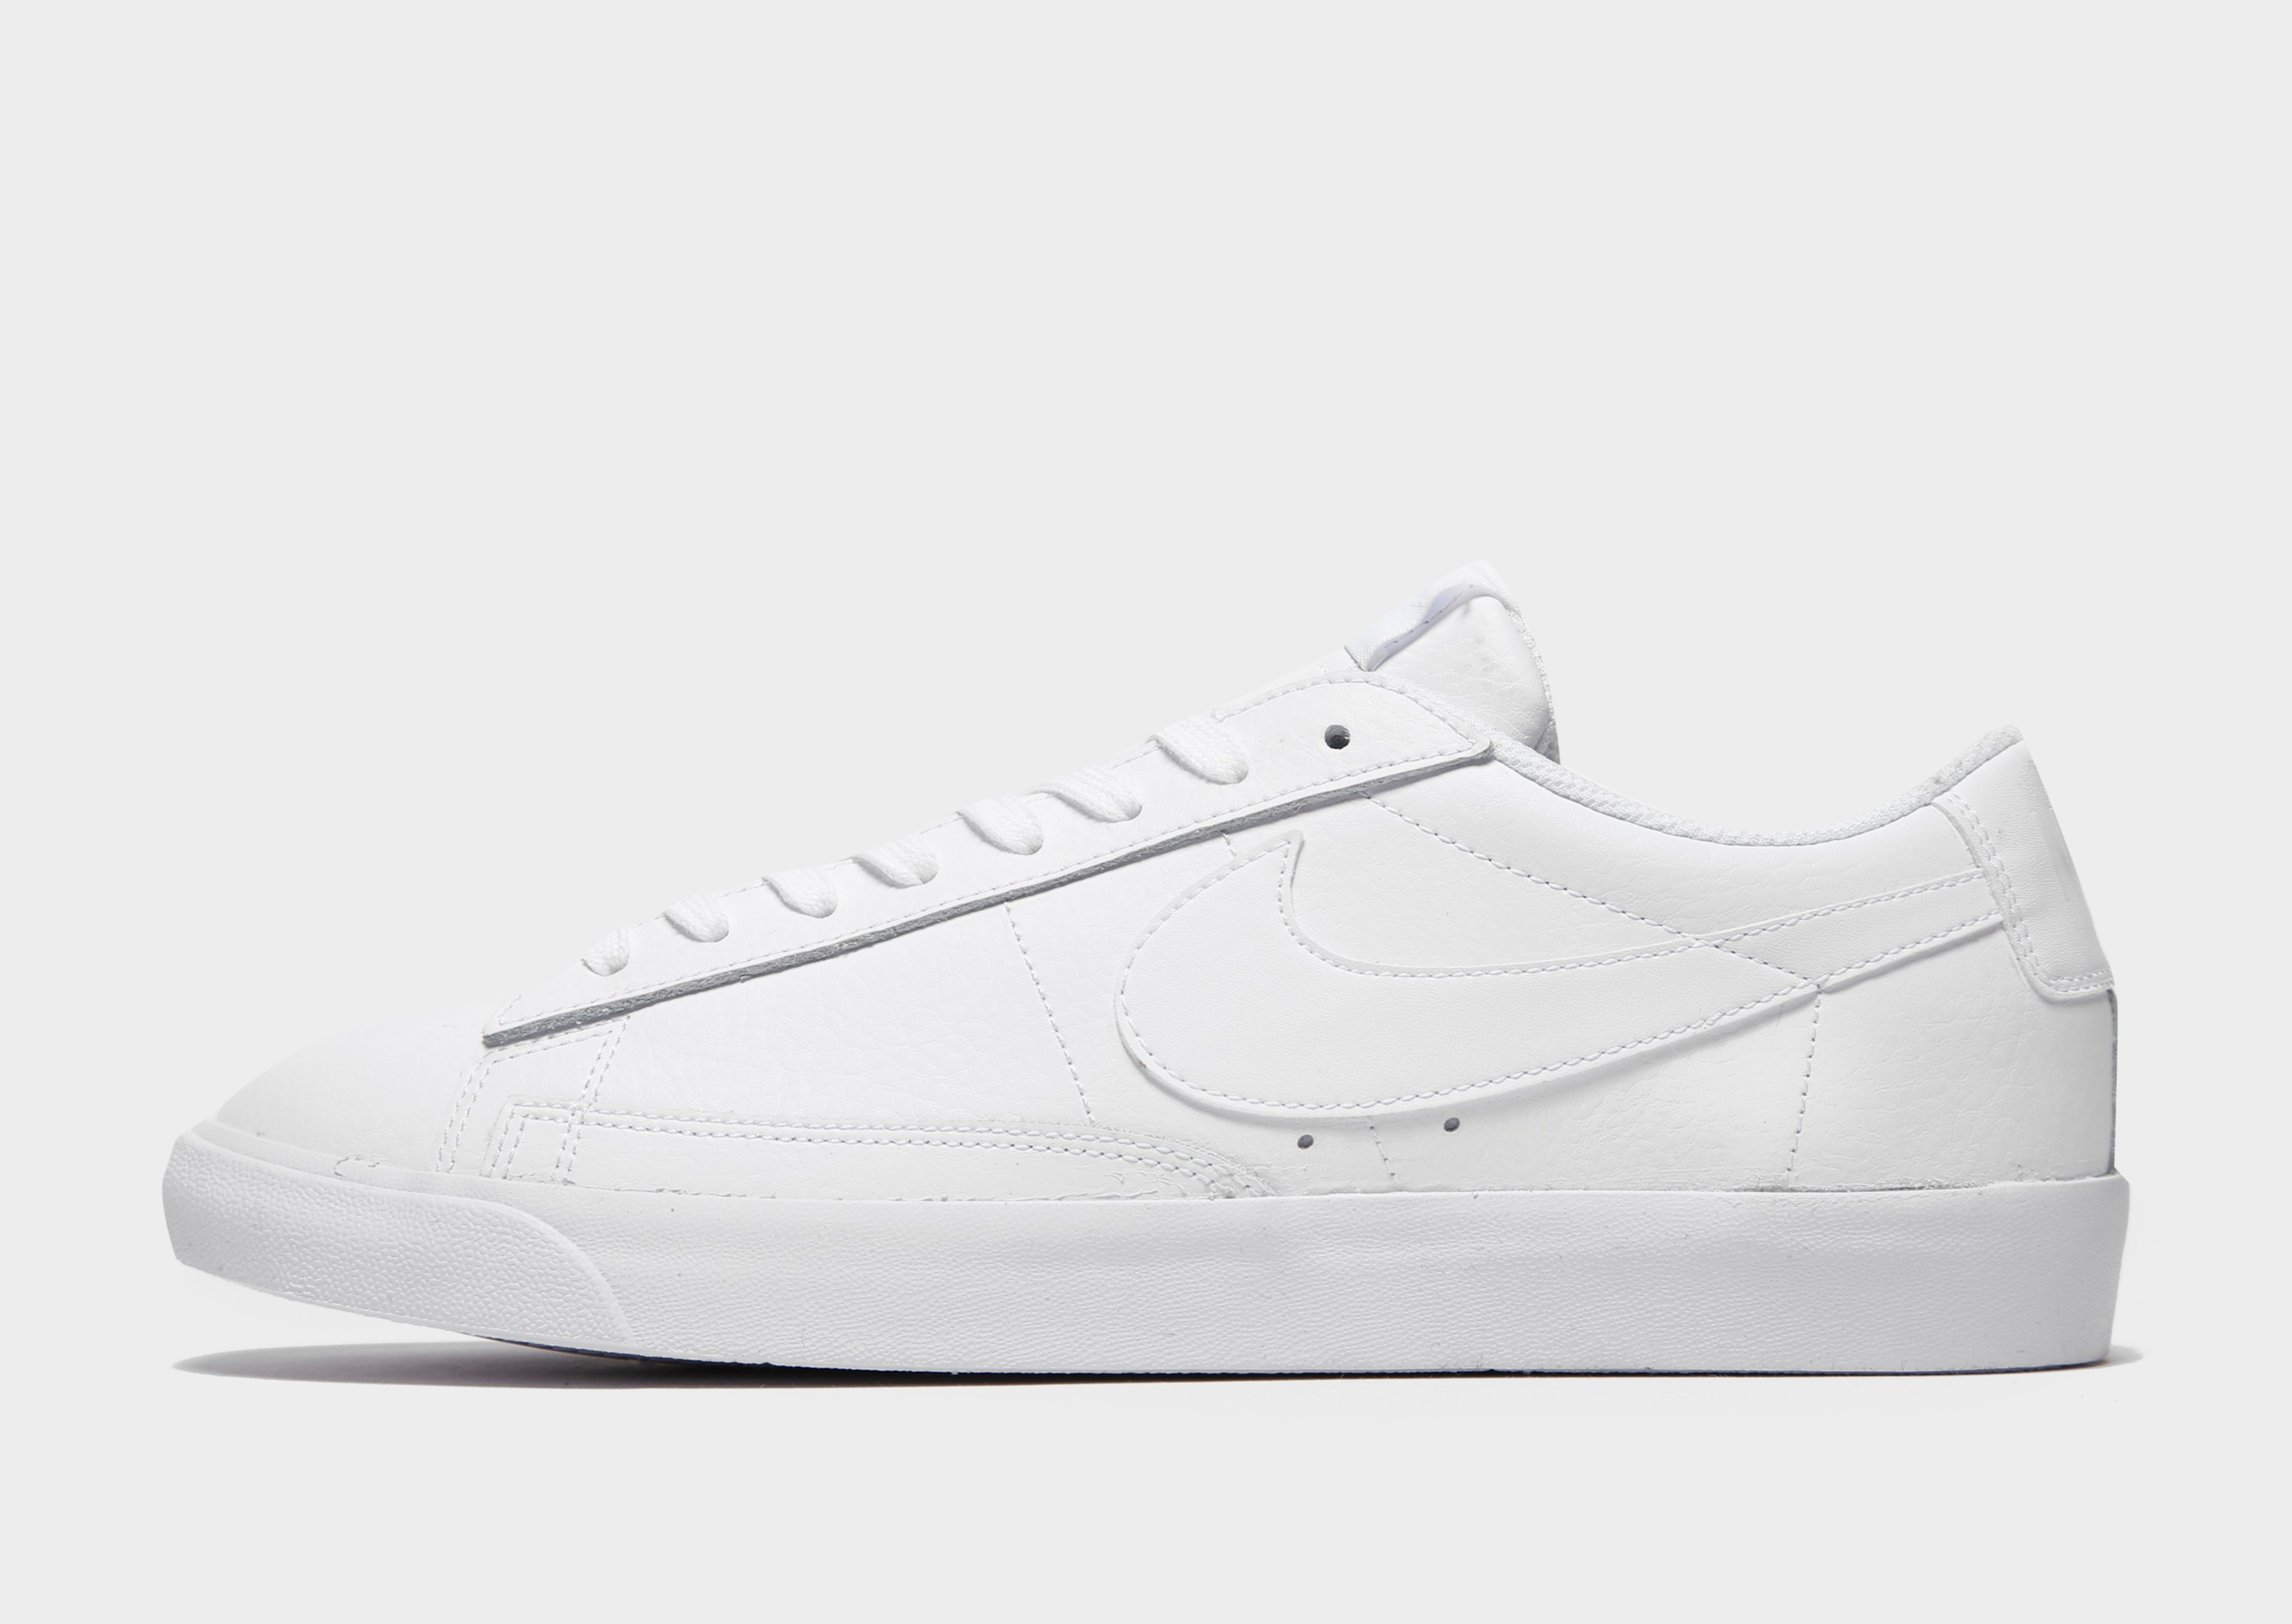 Nike Chaussure Nike Blazer Low pour Homme | JD Sports